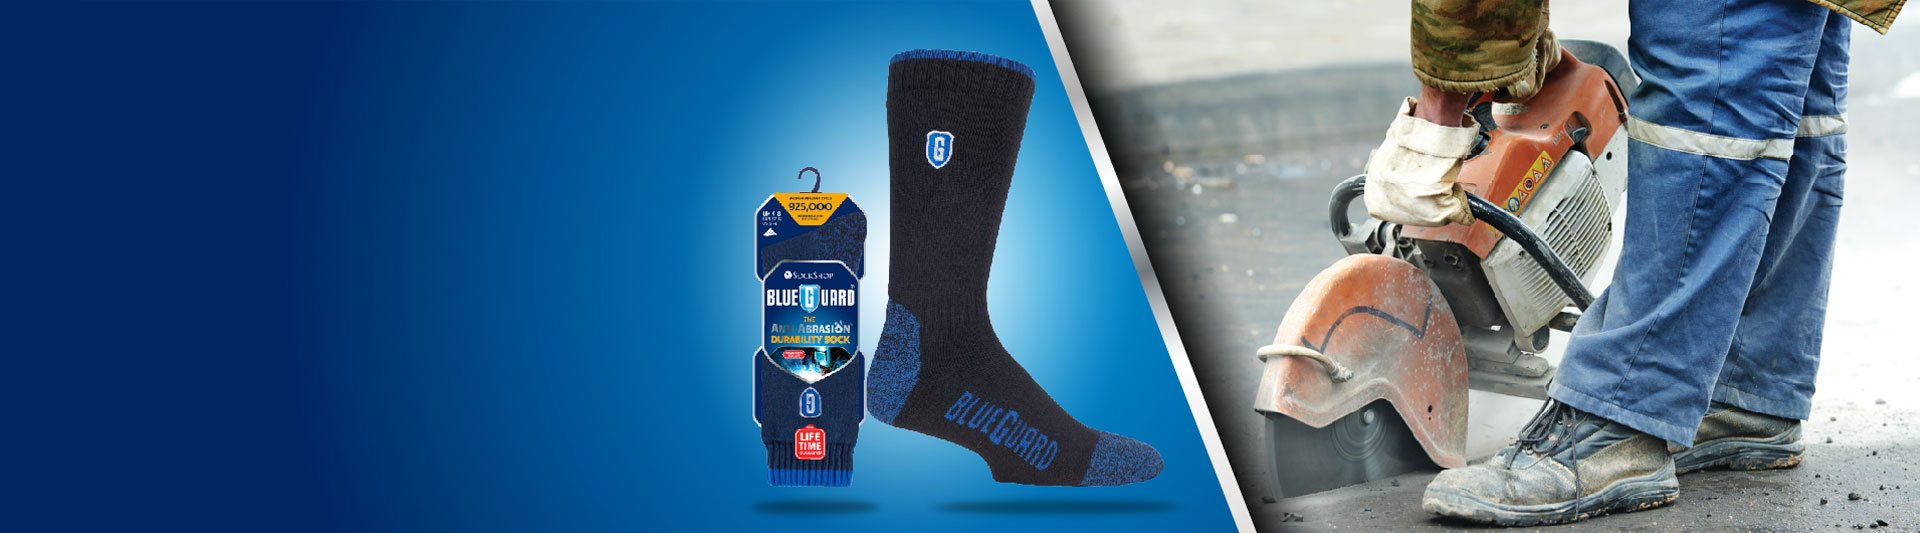 blue-guard Work Force Socks